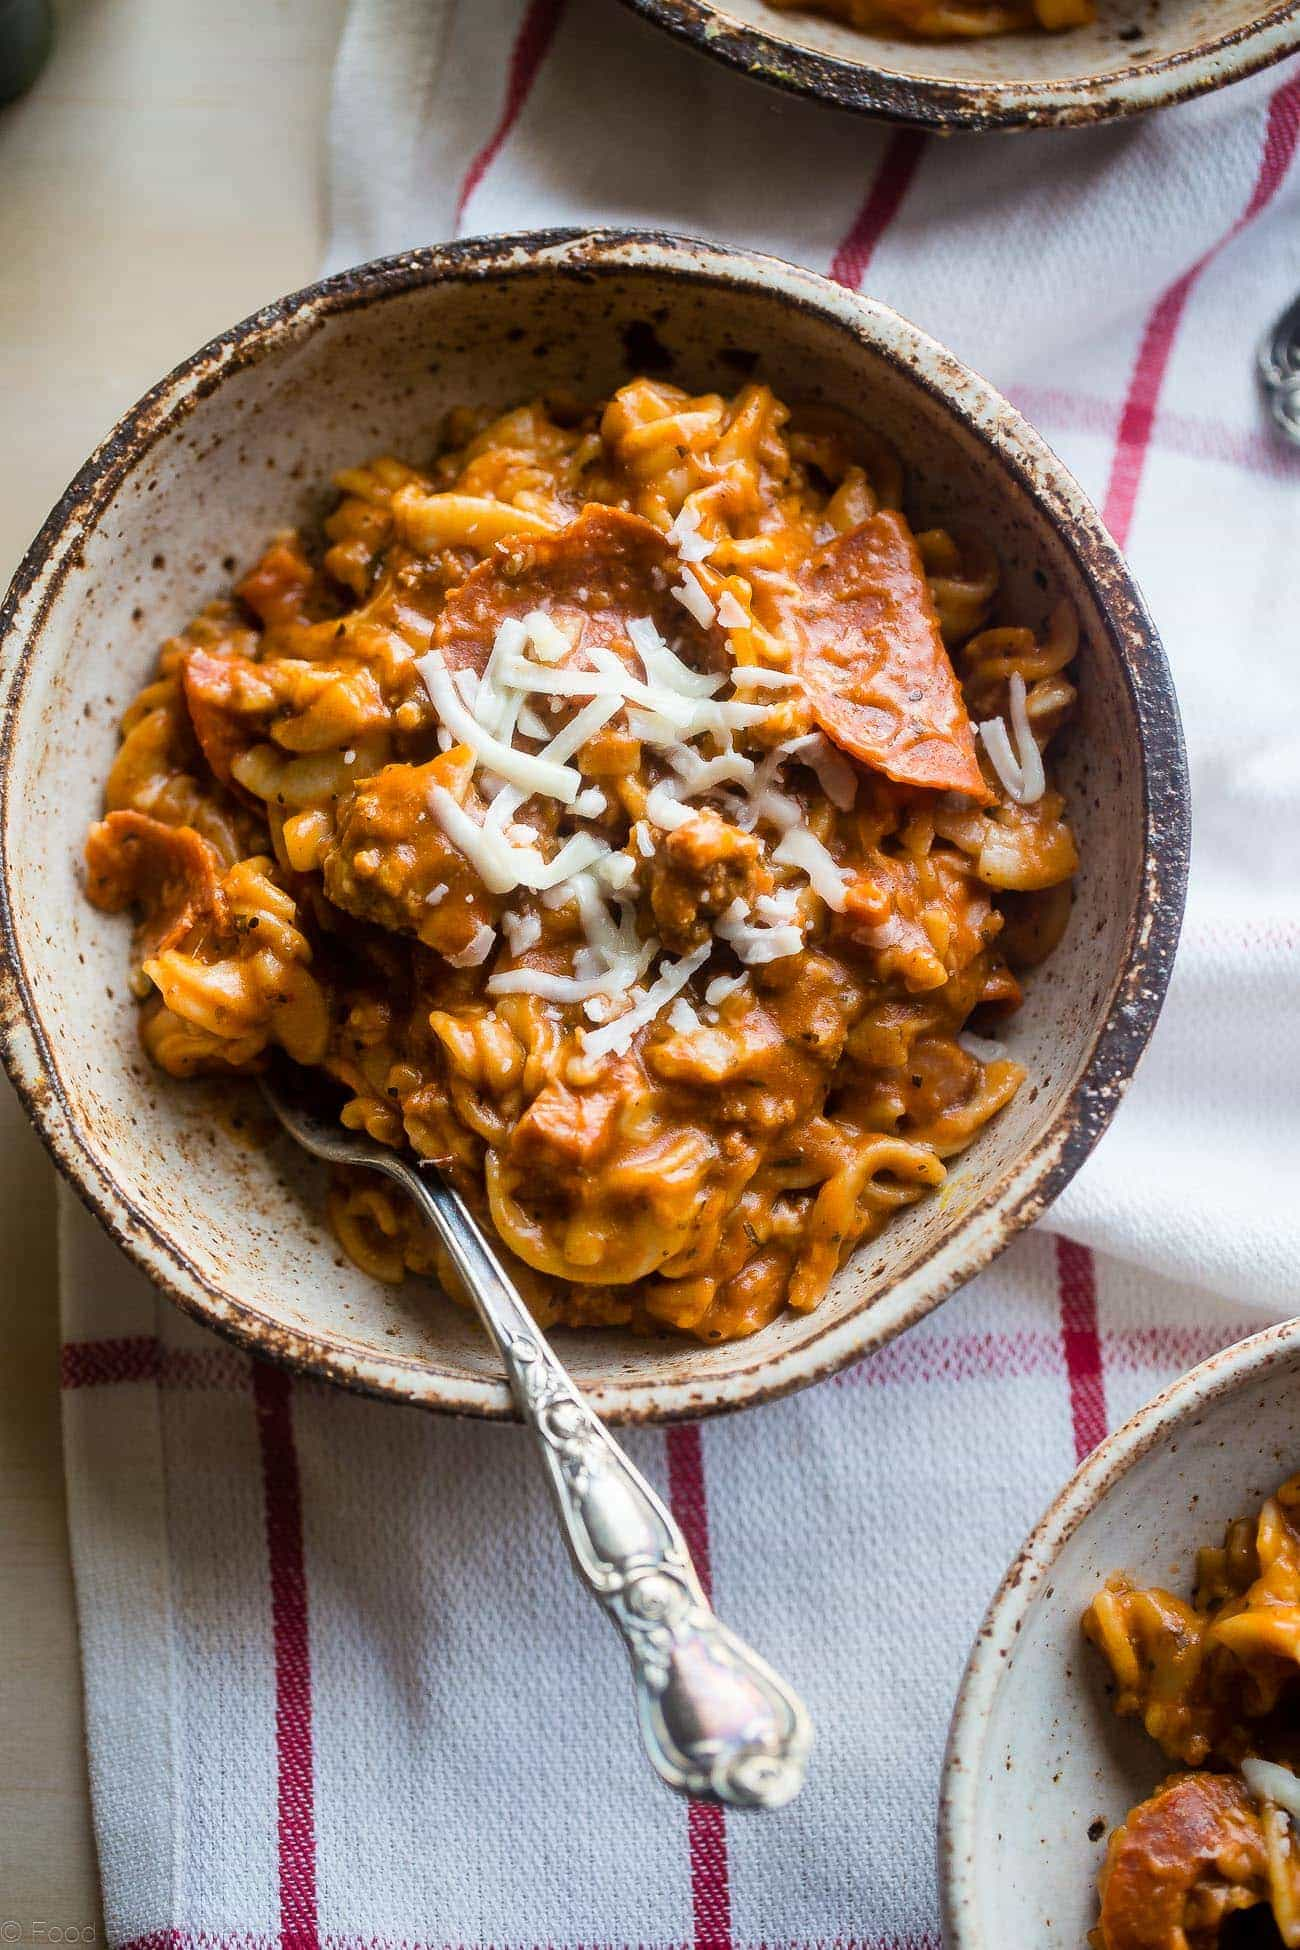 Gluten Free Crock Pot Pizza Pasta - This easy gluten free crock pot pasta has all the flavors of meat lovers pizza, but without all the work! It's a healthy, crowd pleasing weeknight dinner that the whole family will love!   Foodfaithfitness.com   @FoodFaithFit